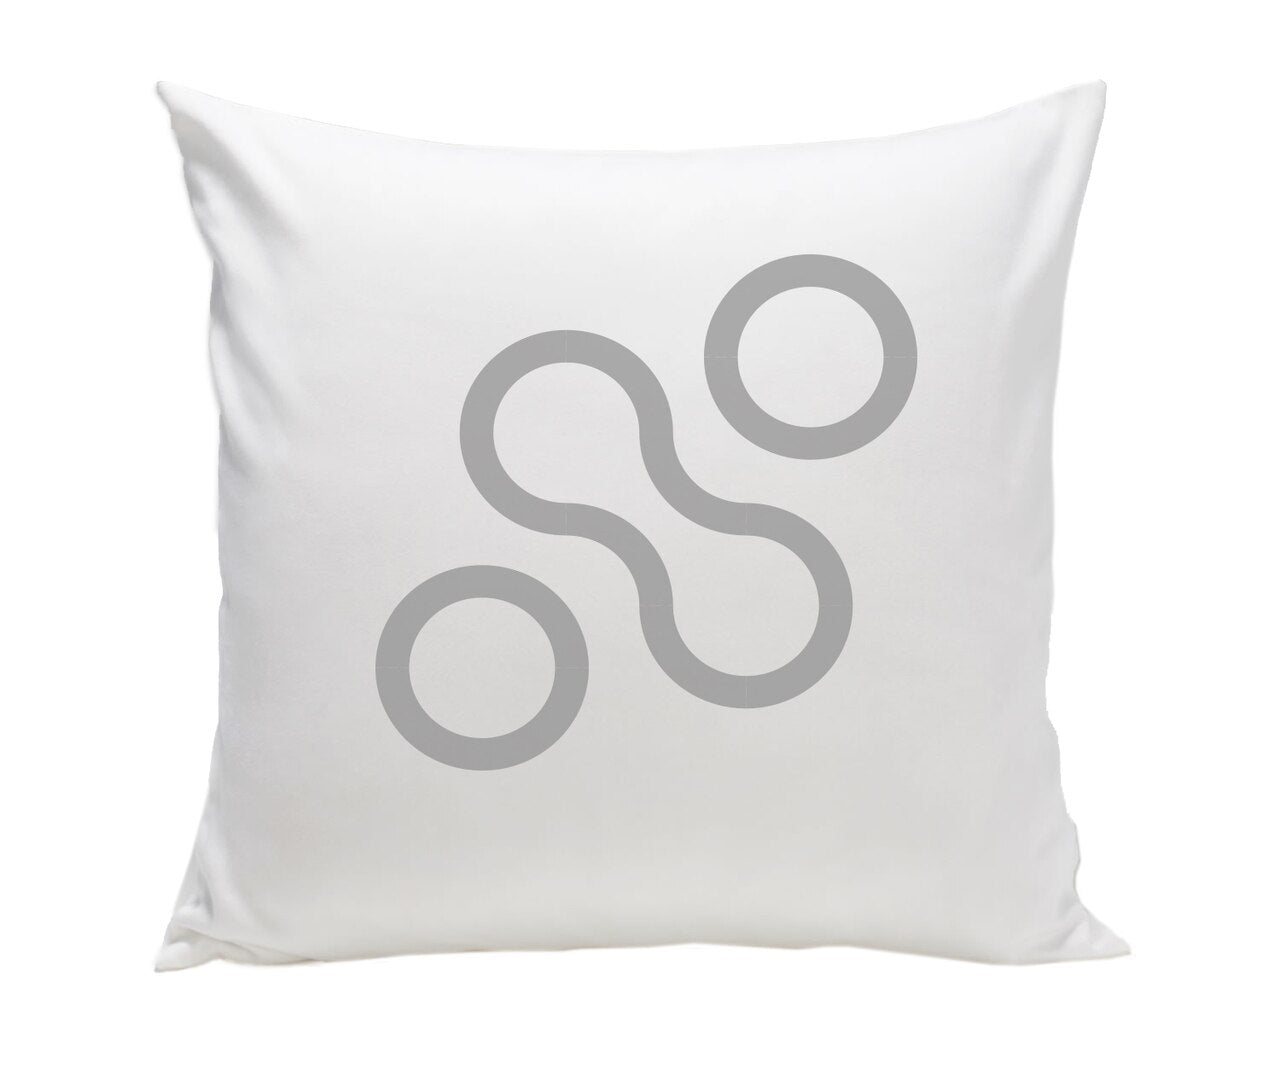 Spot On Square Join Pillow